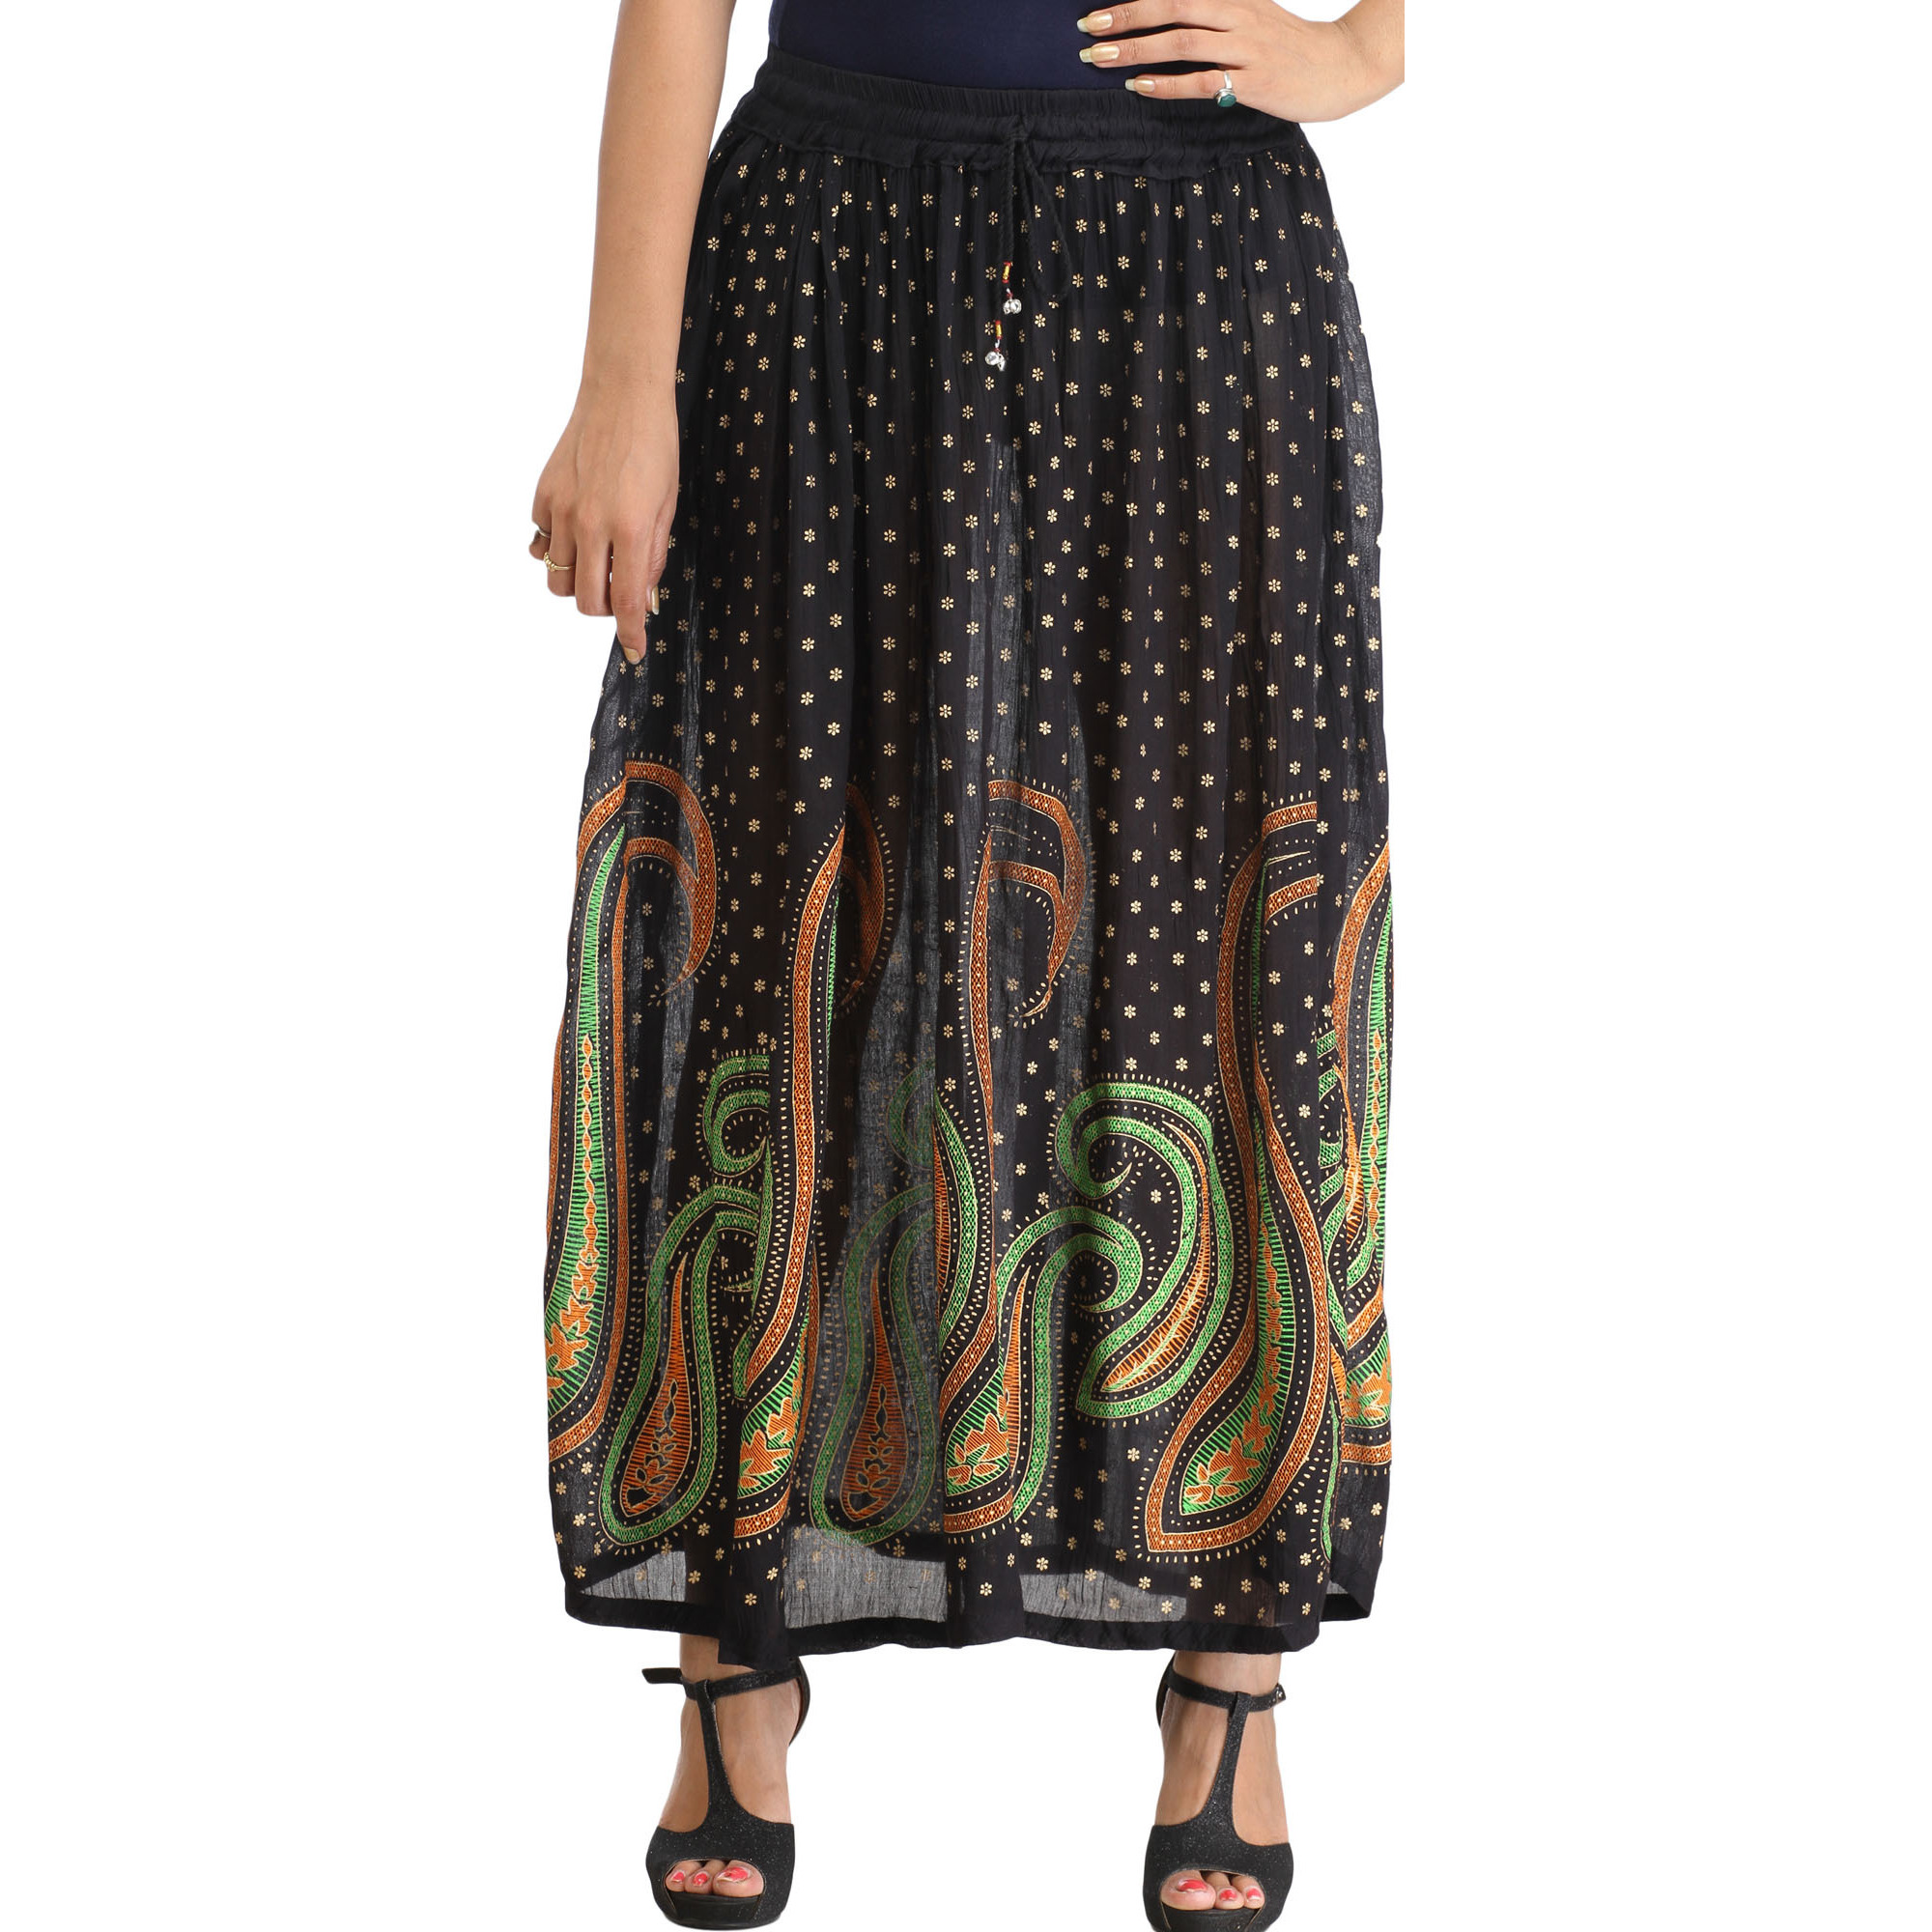 Jet-Black Long Elastic Skirt with Printed Paisleys and Bootis